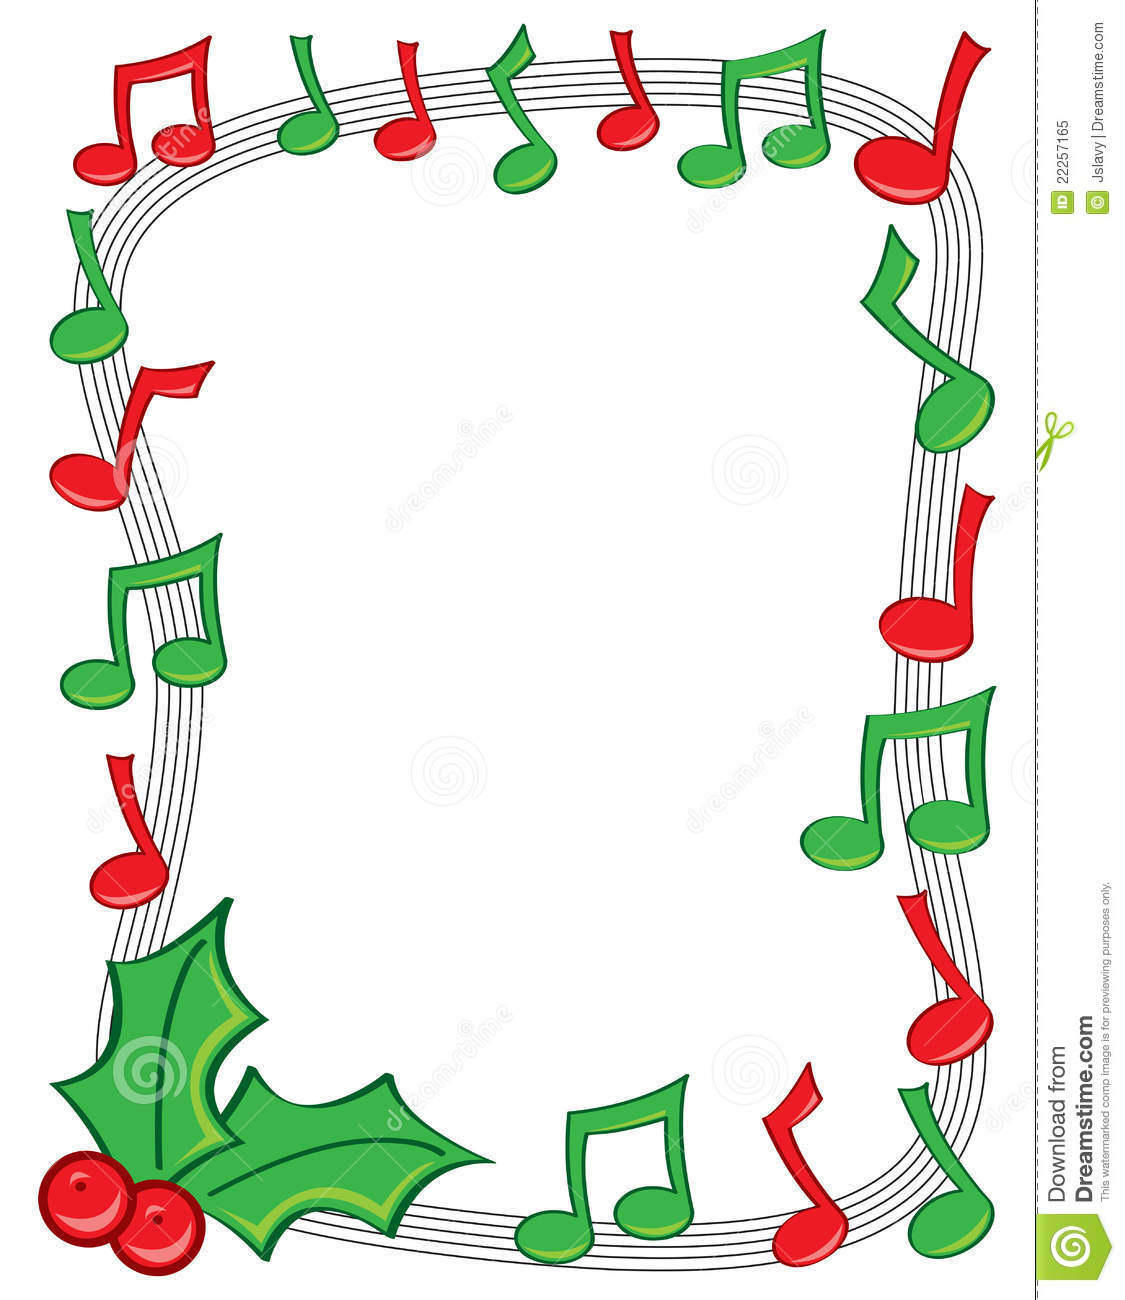 Holydays clipart music note Clipart Clipart Corner Images Border